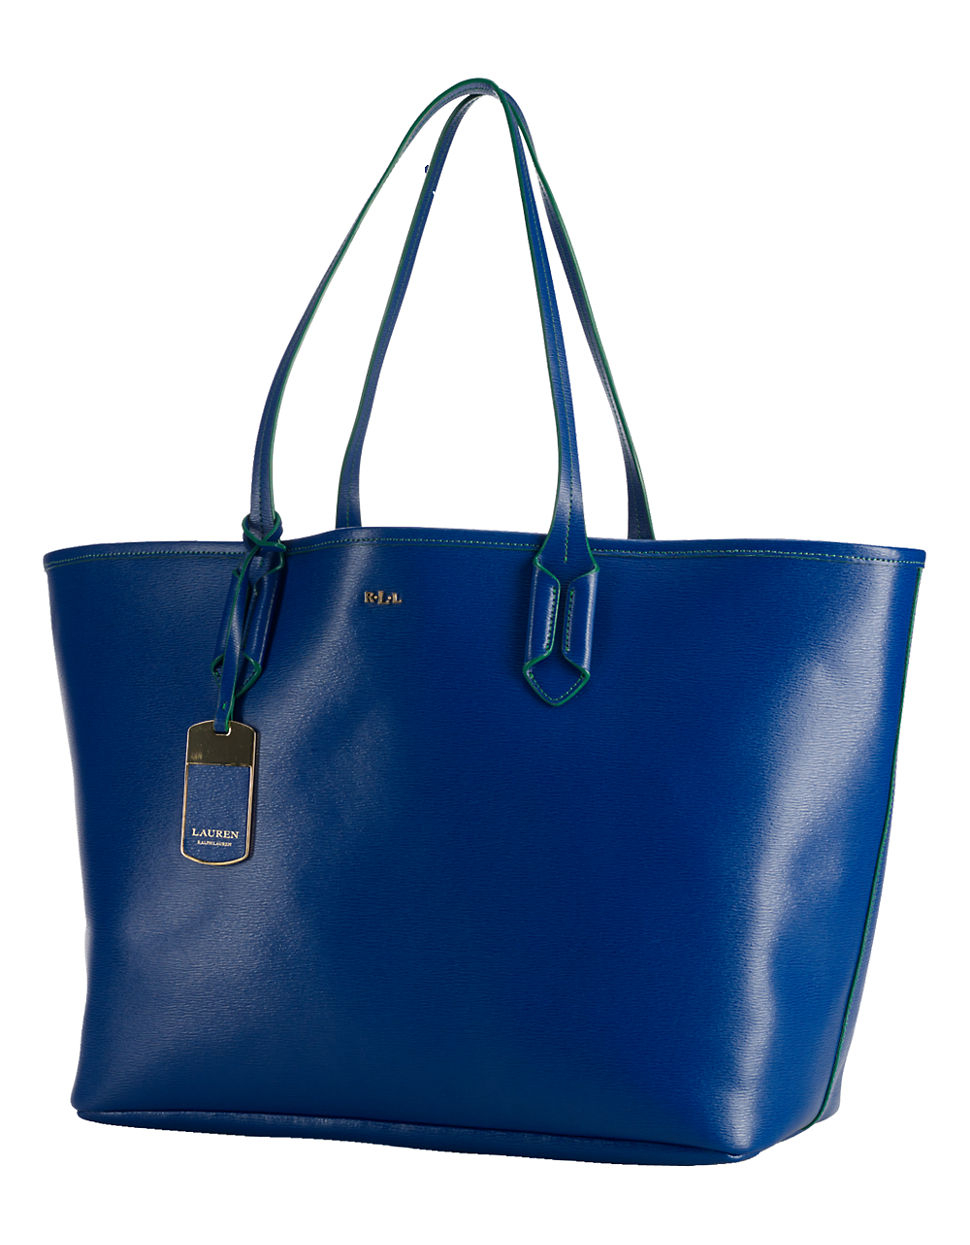 Lauren by ralph lauren Tate Classic Leather Tote Bag in Blue | Lyst